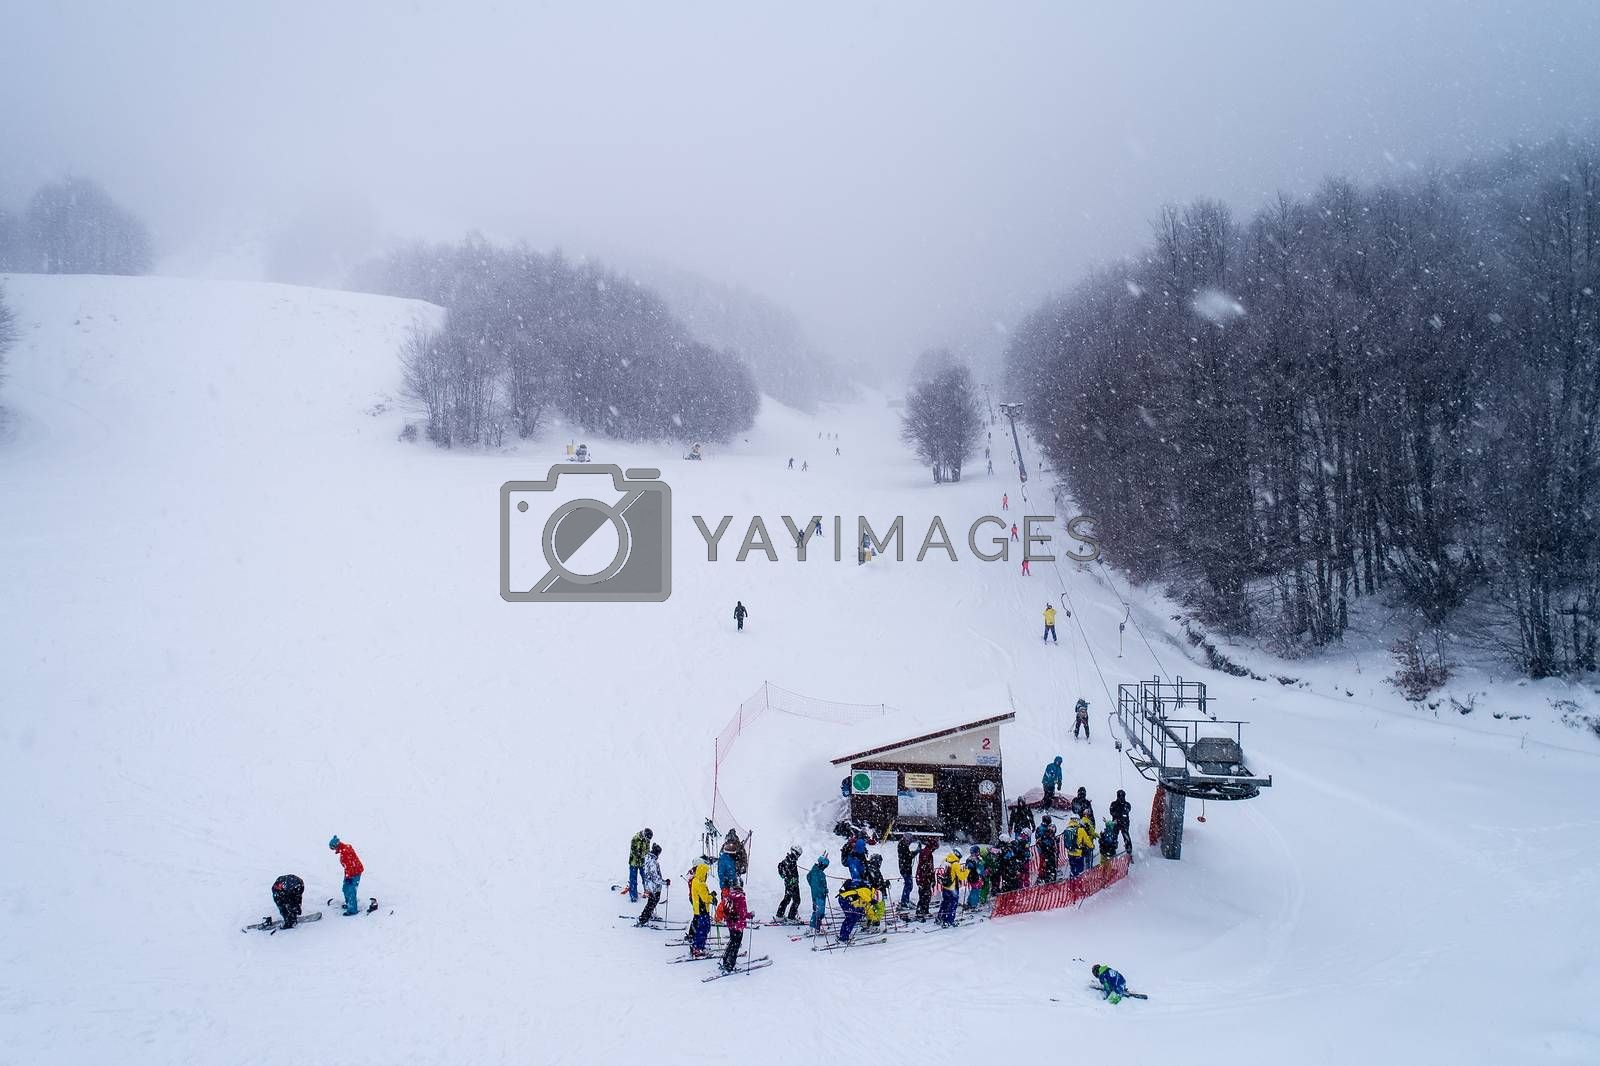 Naousa, Greece - January 13, 2018: Aerial View of skiers at Ski Resort 3-5 pigadia during the snowfall in the mountain Vermio.It is a modern ski resort with ski slopes with every degree of difficulty